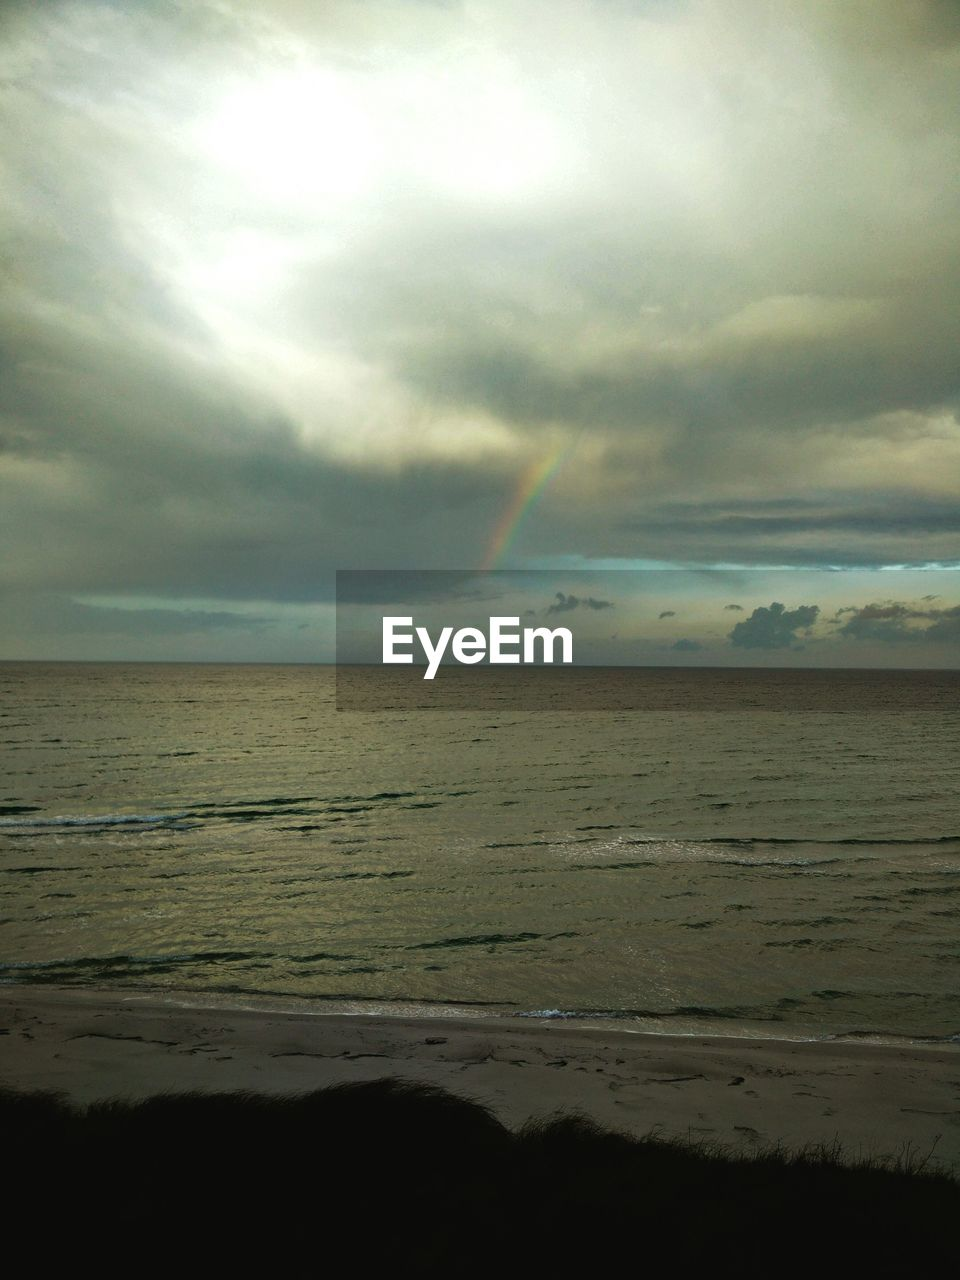 VIEW OF SEA AGAINST CLOUDY SKY